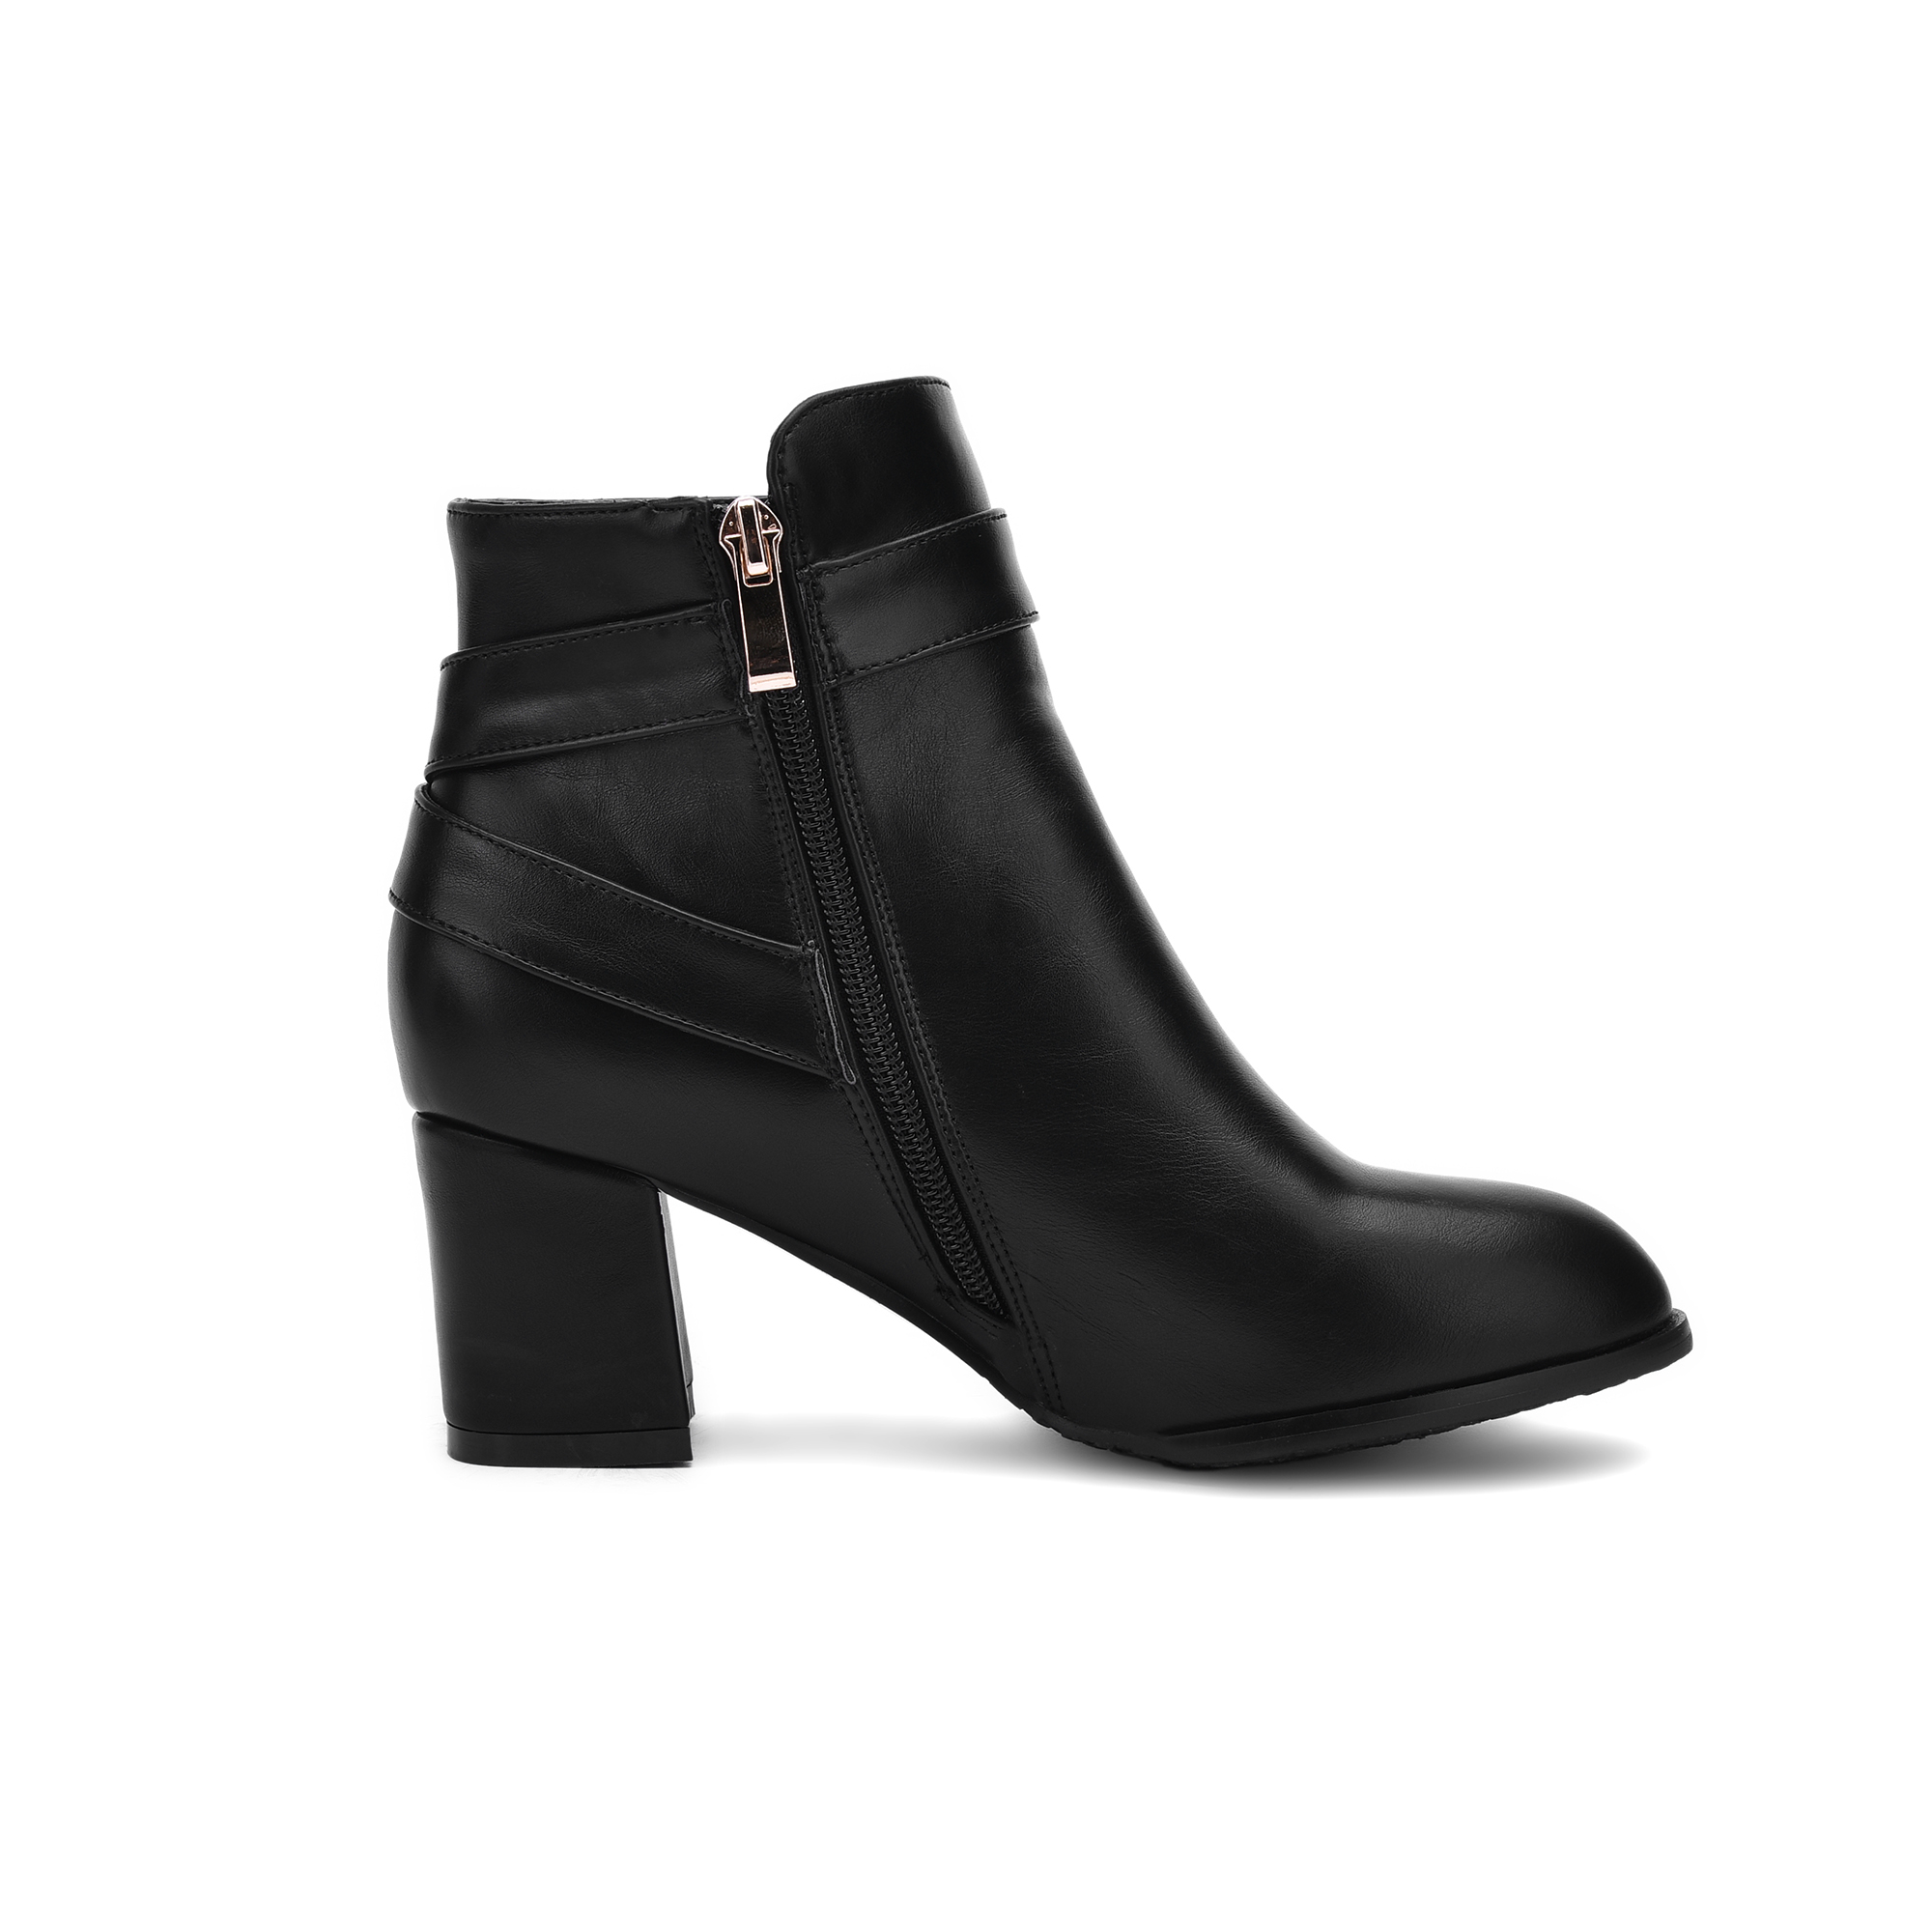 Image 4 - Autumn Women Boots Square High Heel Ankle Boots Fashion Pointed Toe Buckle Winter Zipper Boots Female Shoes Black White Beige-in Ankle Boots from Shoes